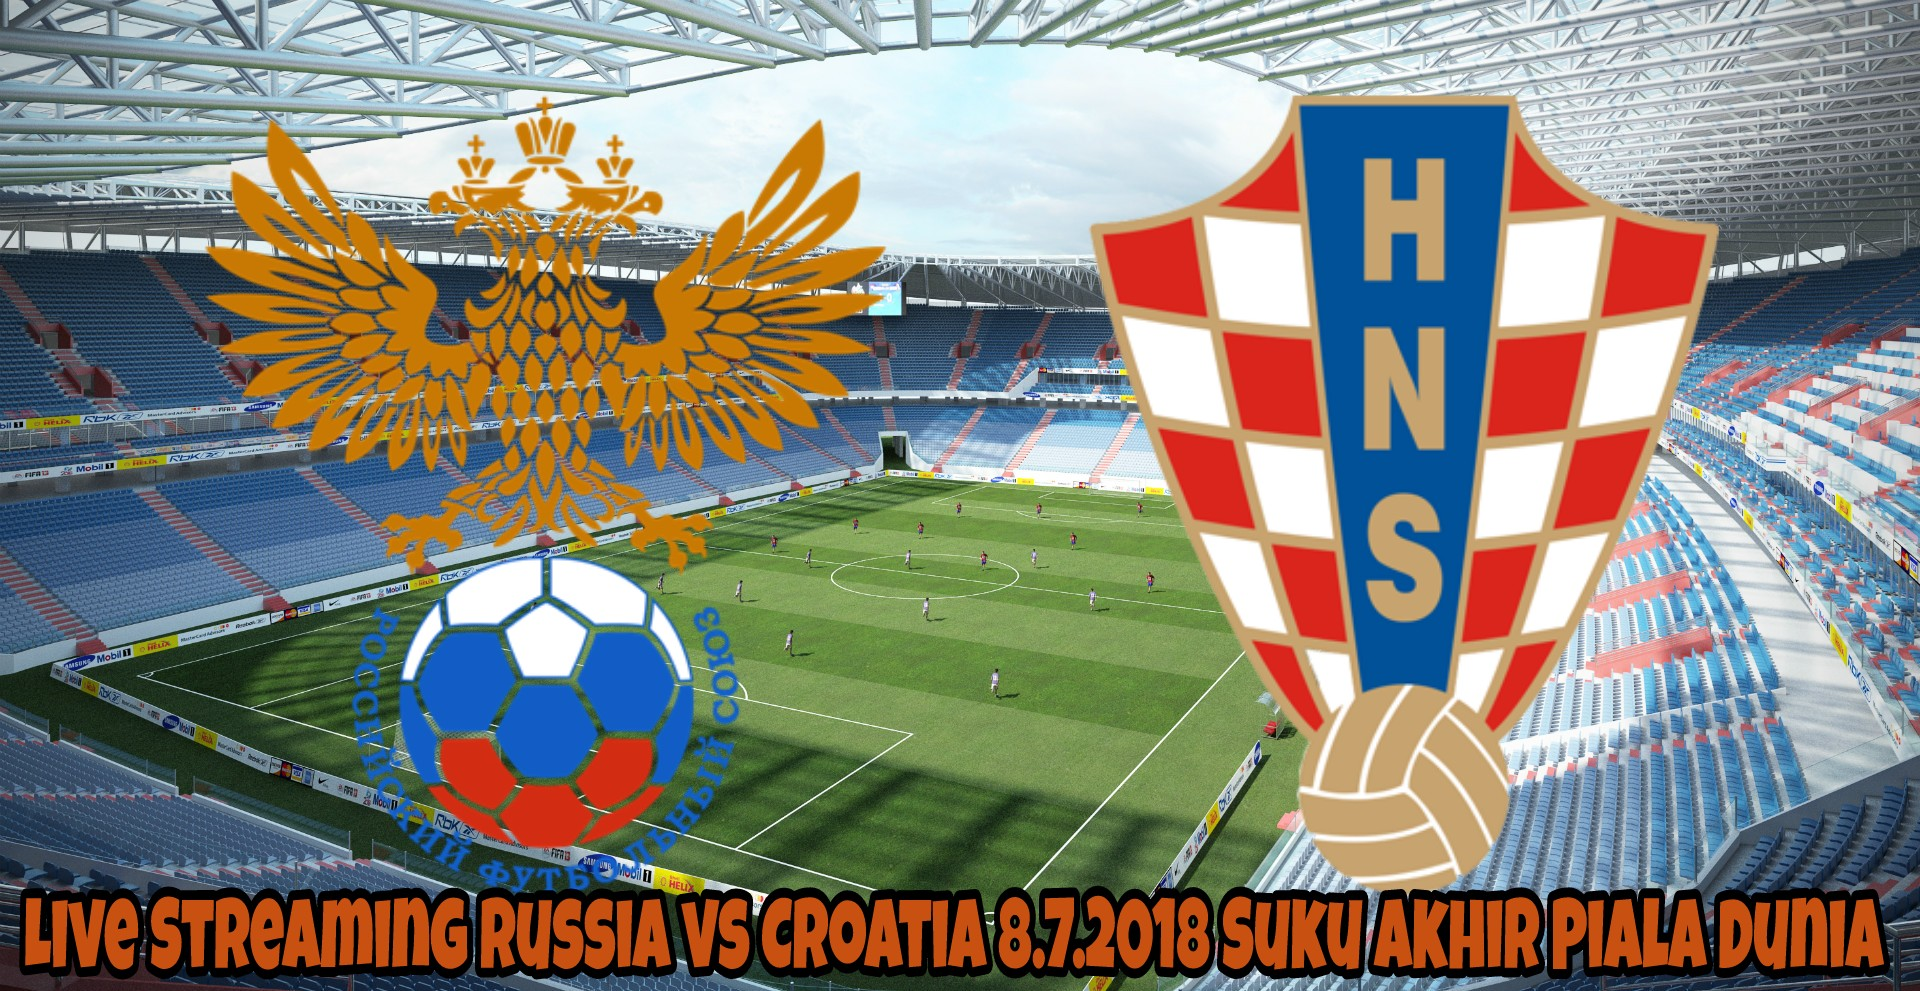 Live Streaming Russia vs Croatia 8.7.2018 Suku Akhir Piala Dunia